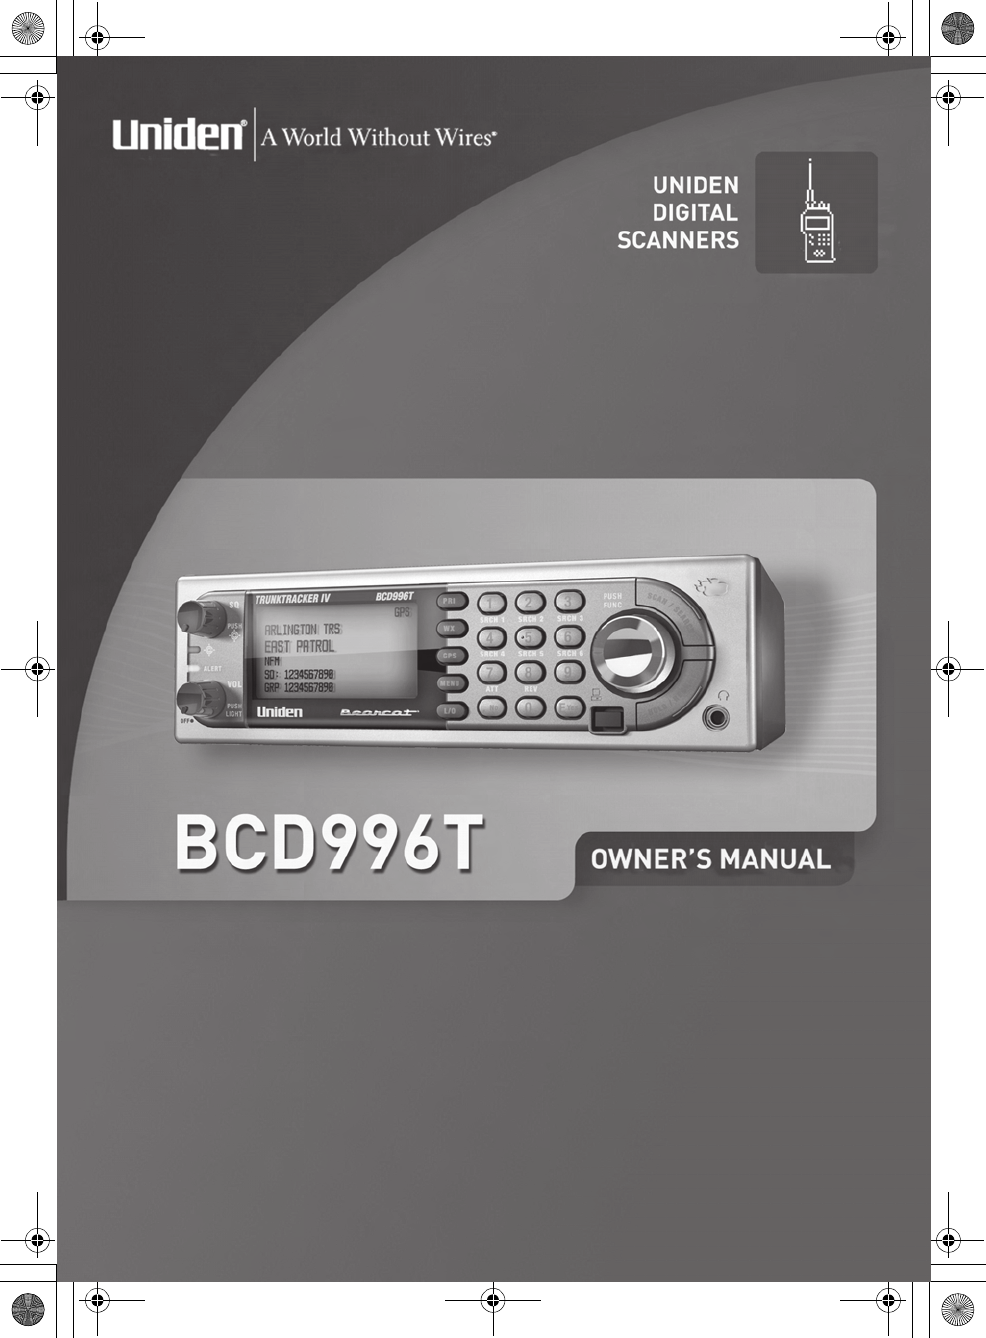 Uniden Bcd996t Ub335zh User Manual To The 9e42d915 Fee1 410b Bd21 Nmea Cable Wiring Diagram Cf58fad82166